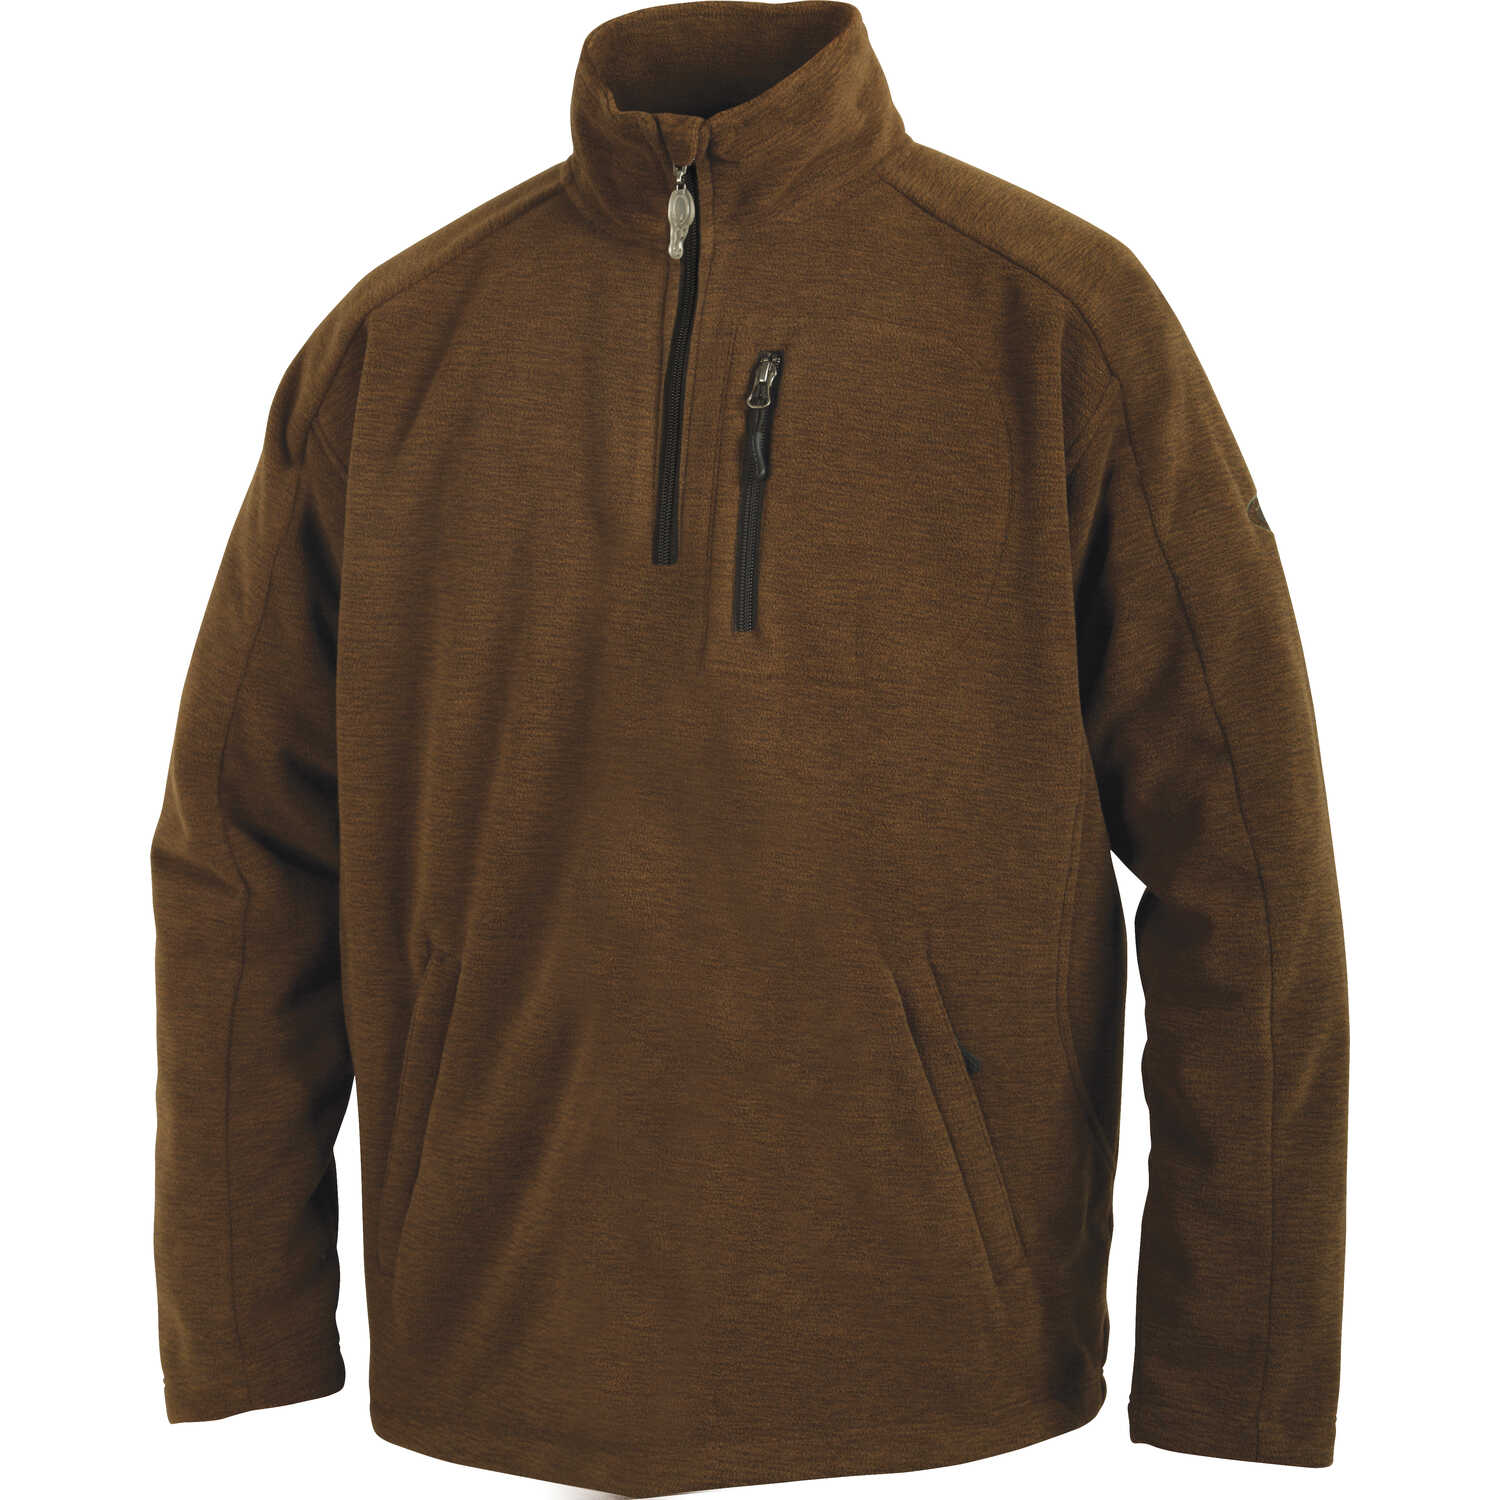 Drake  MST  XL  Long Sleeve  Men's  Quarter Zip  Heathered Brown  Pullover